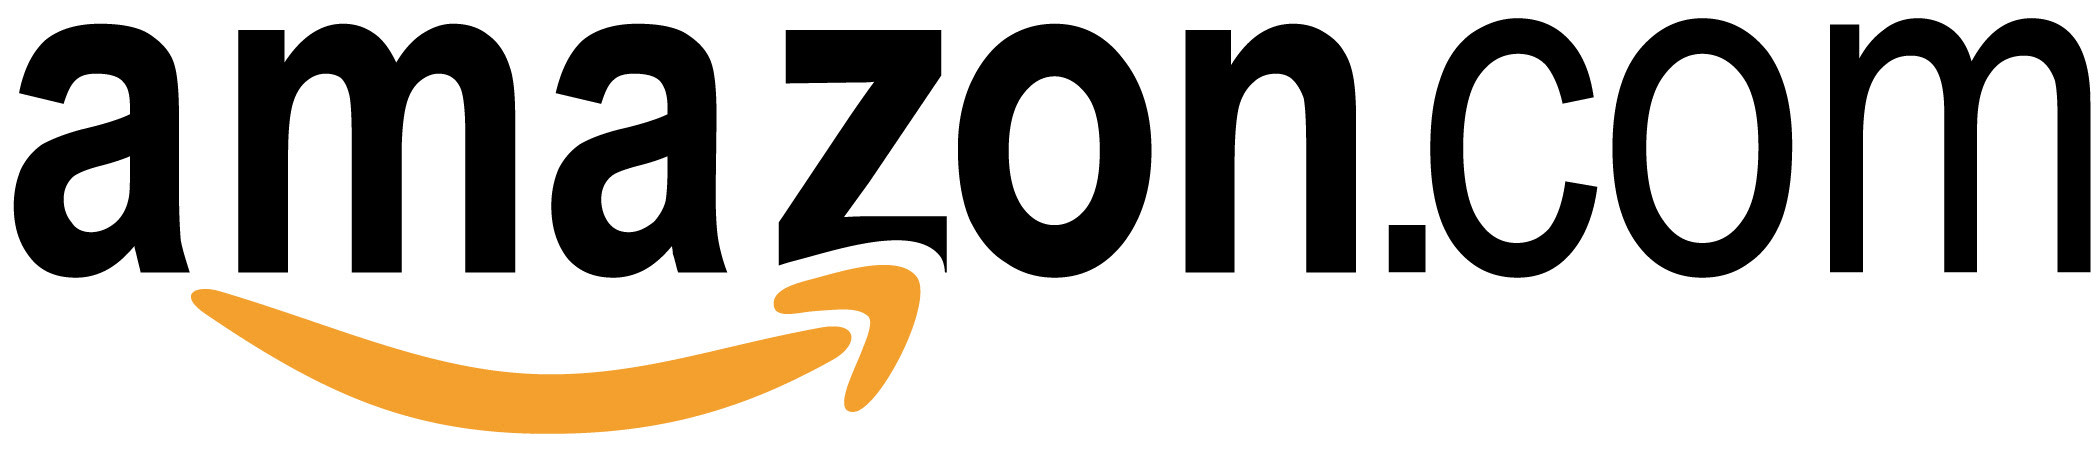 Amazon Logo Vector Png Transparent Amazon Logo Vector Png Images